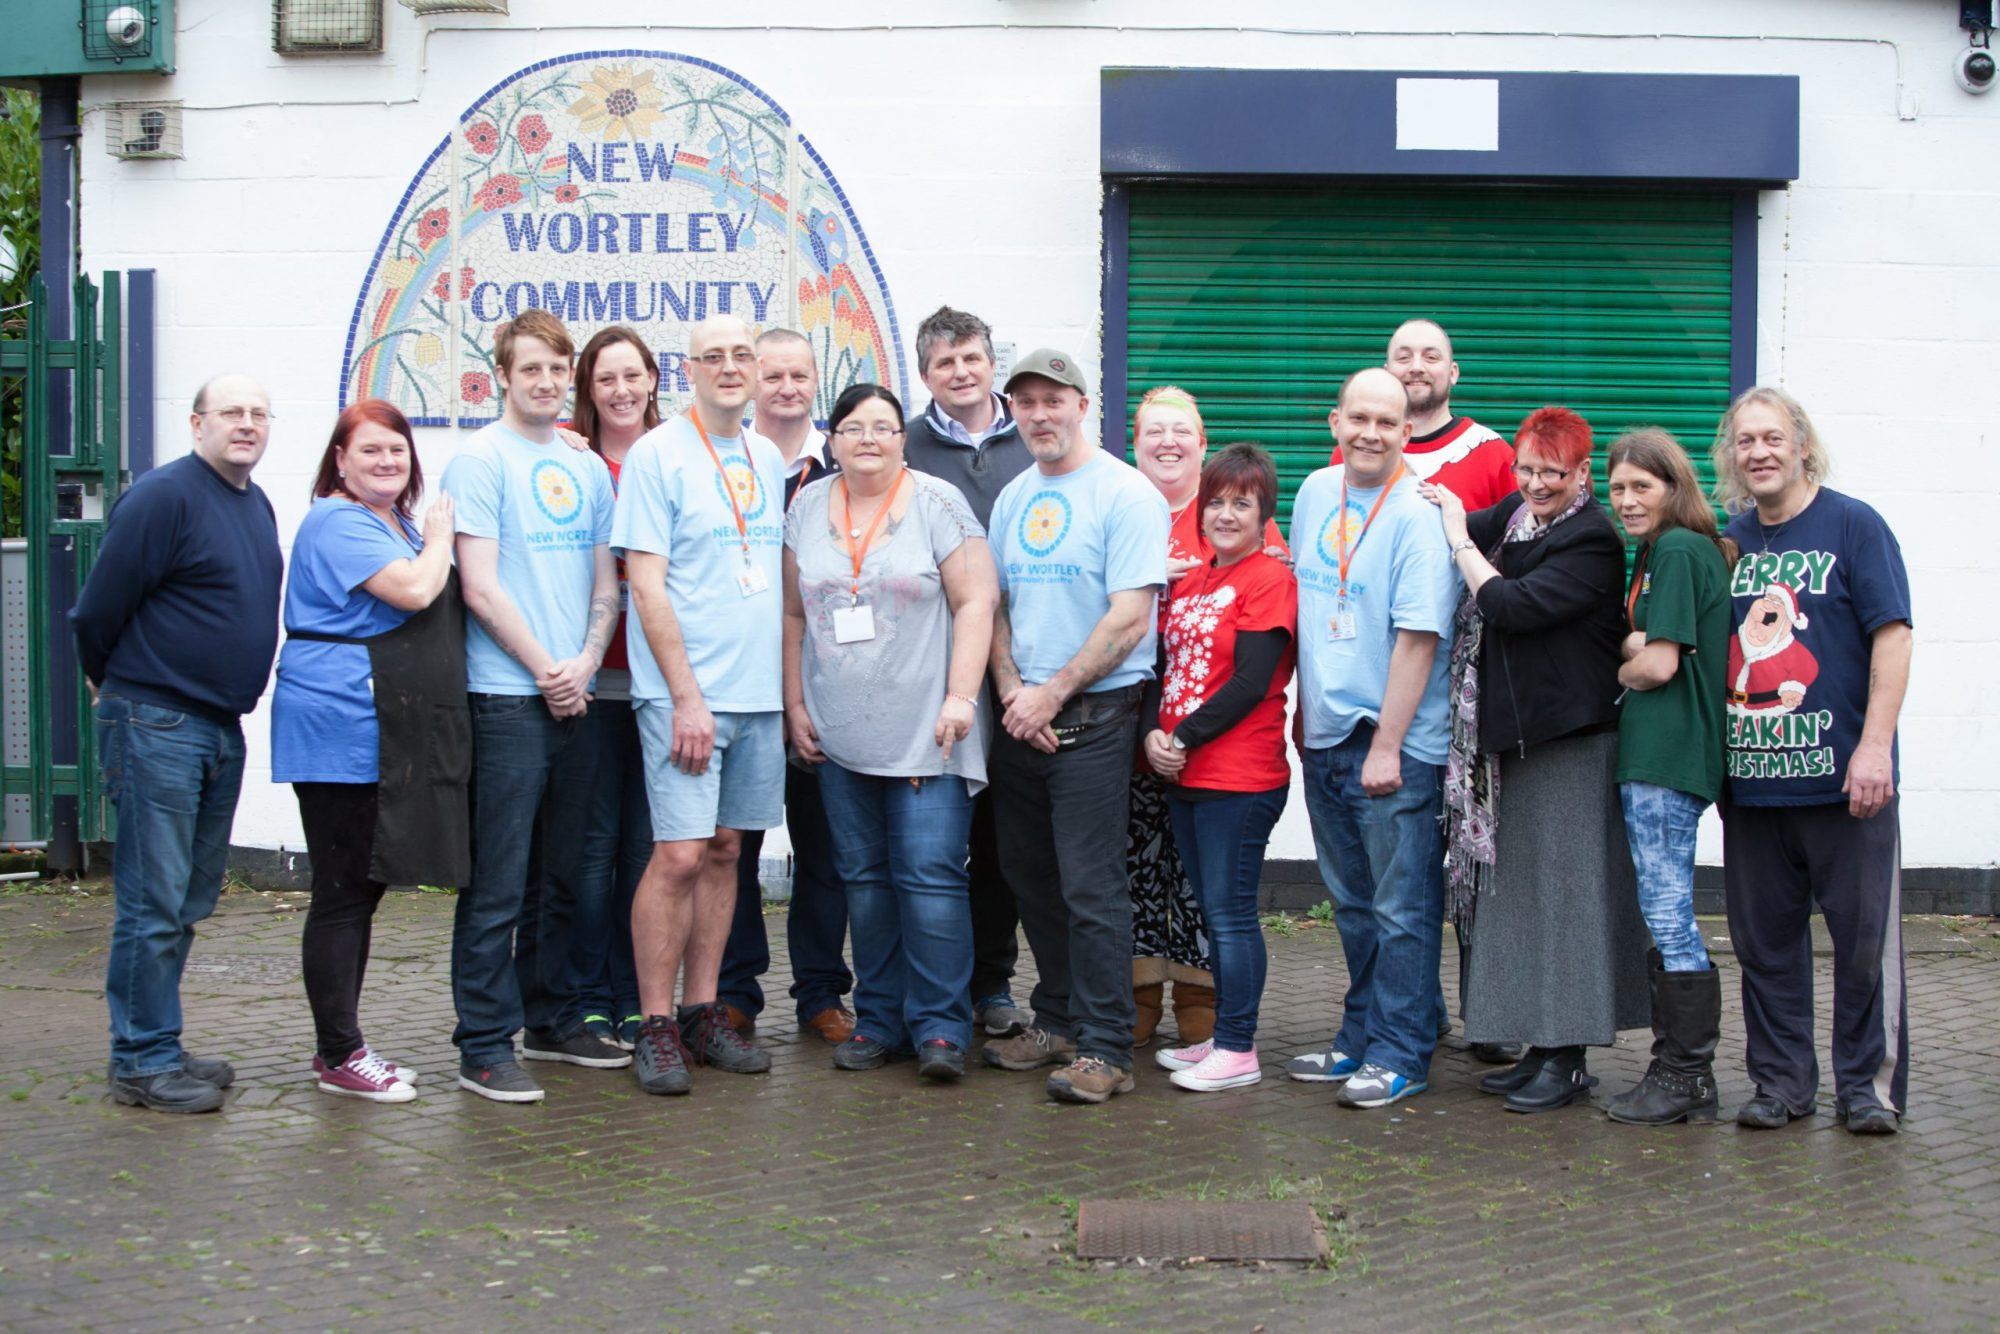 How can community businesses work with GPs to help people take care into their own hands